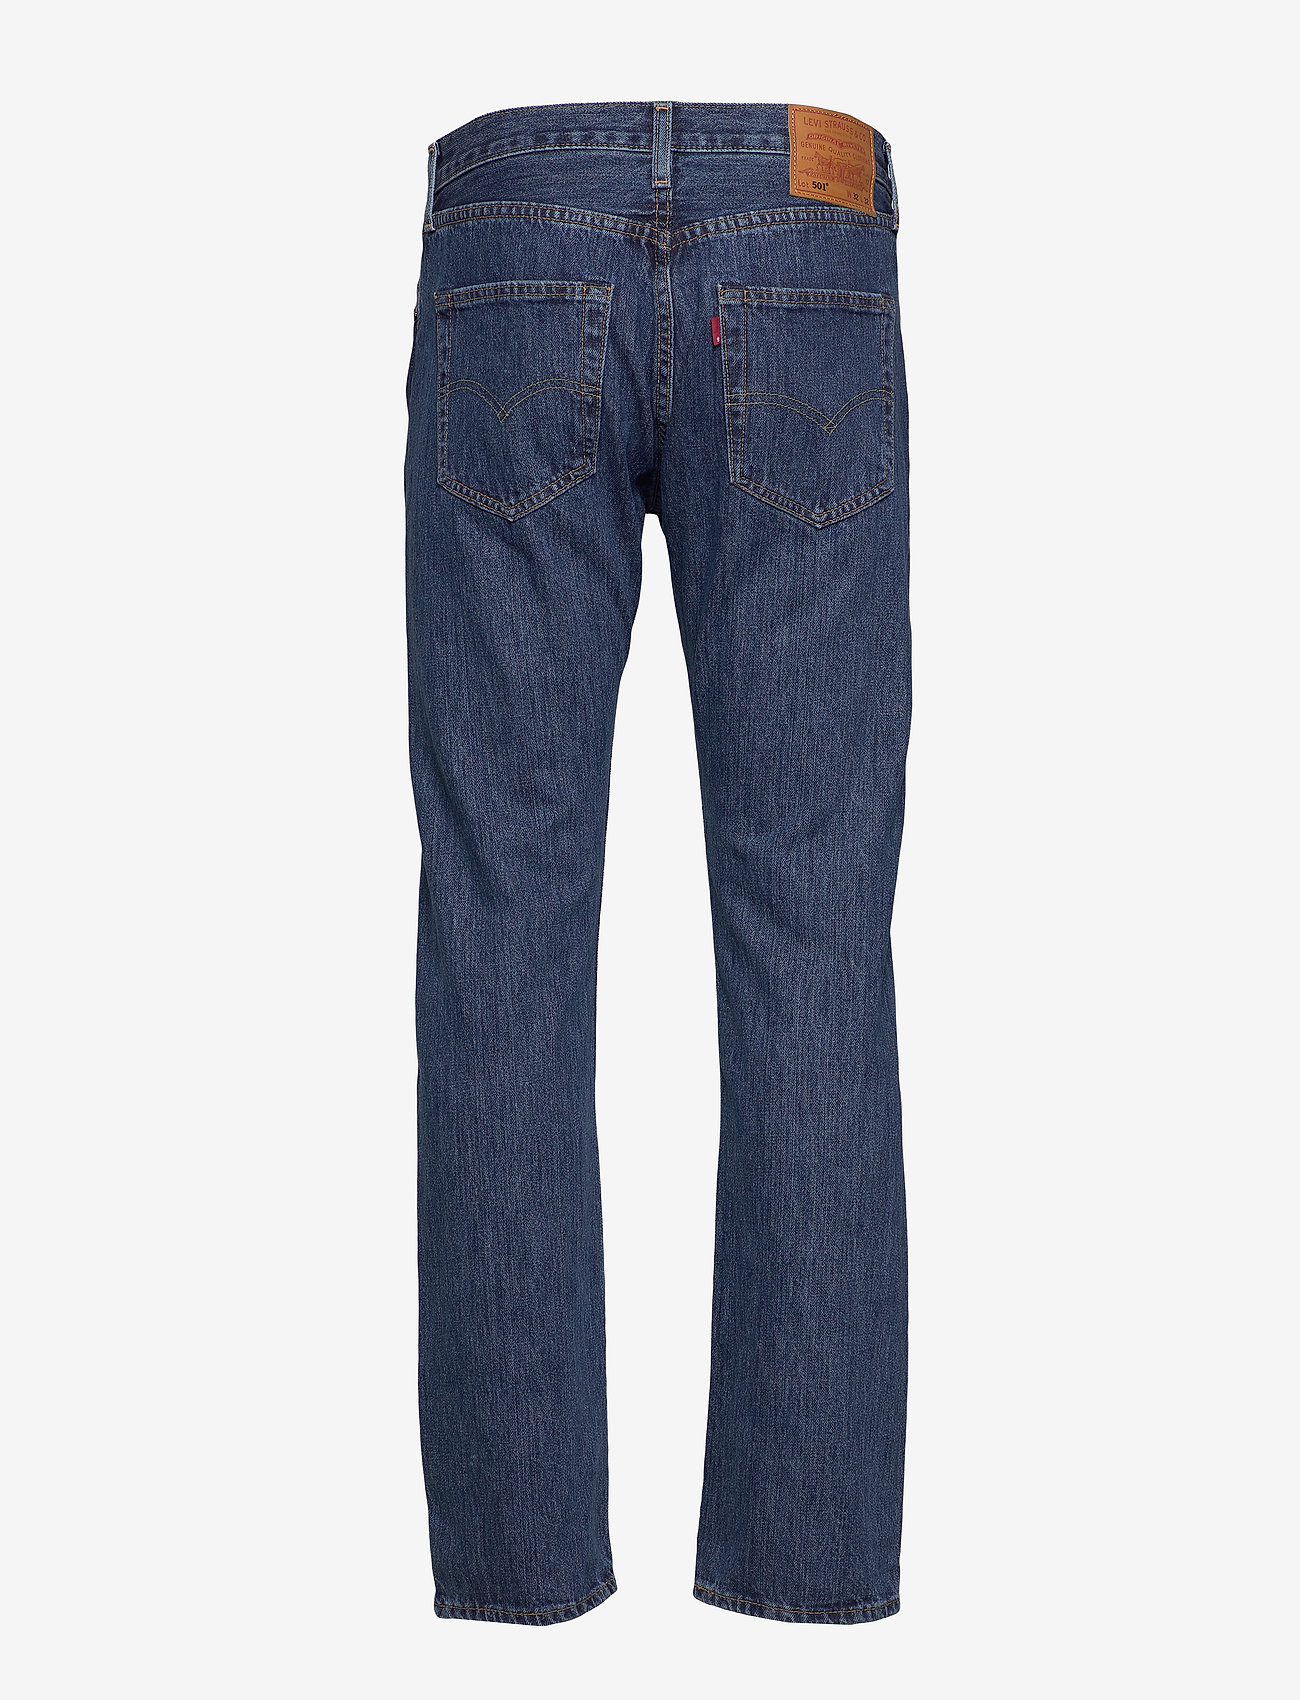 LEVI´S Men - 501 LEVISORIGINAL FIT STONEWASH - regular jeans - med indigo - flat finish - 1